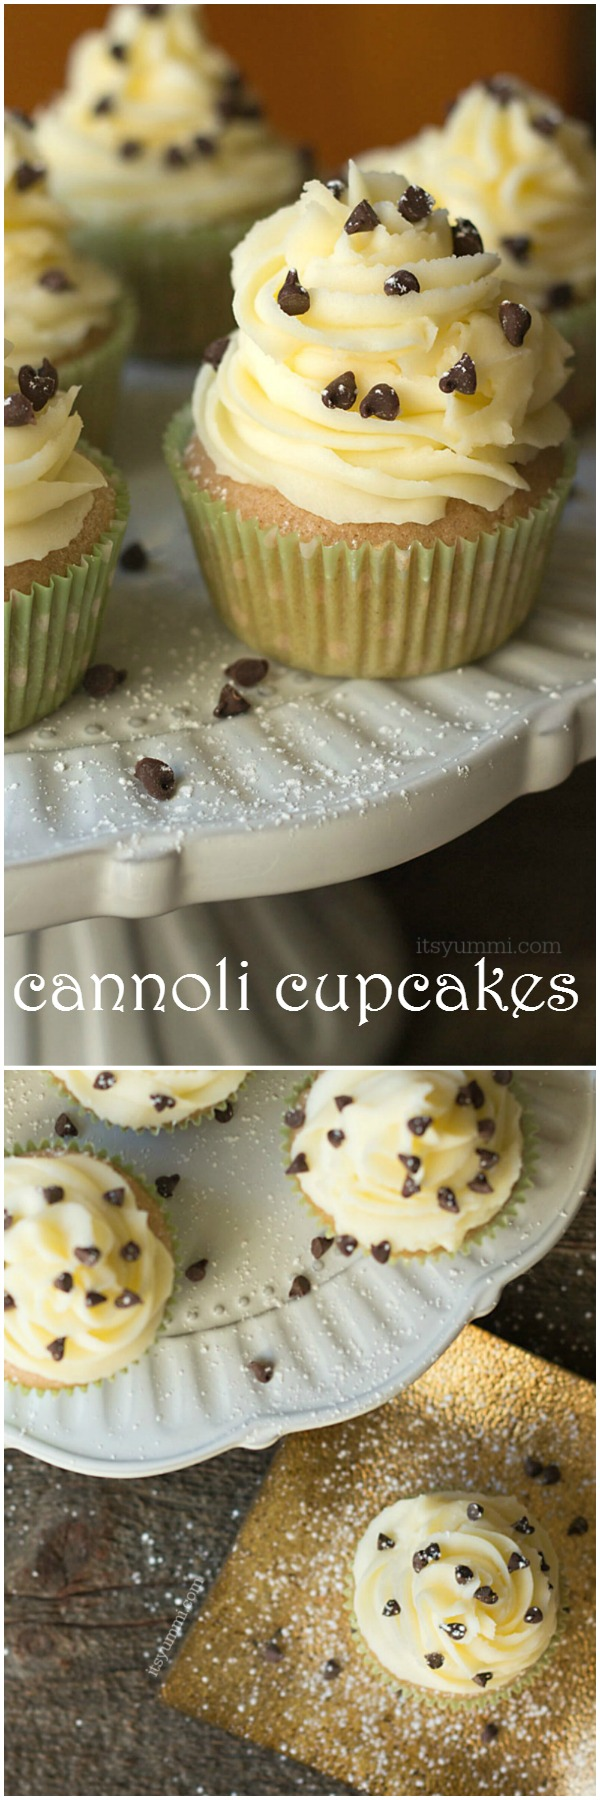 Cannoli cupcakes are inspired by the popular Italian dessert. Vanilla cupcakes with mascarpone frosting, chocolate chips and powdered sugar.